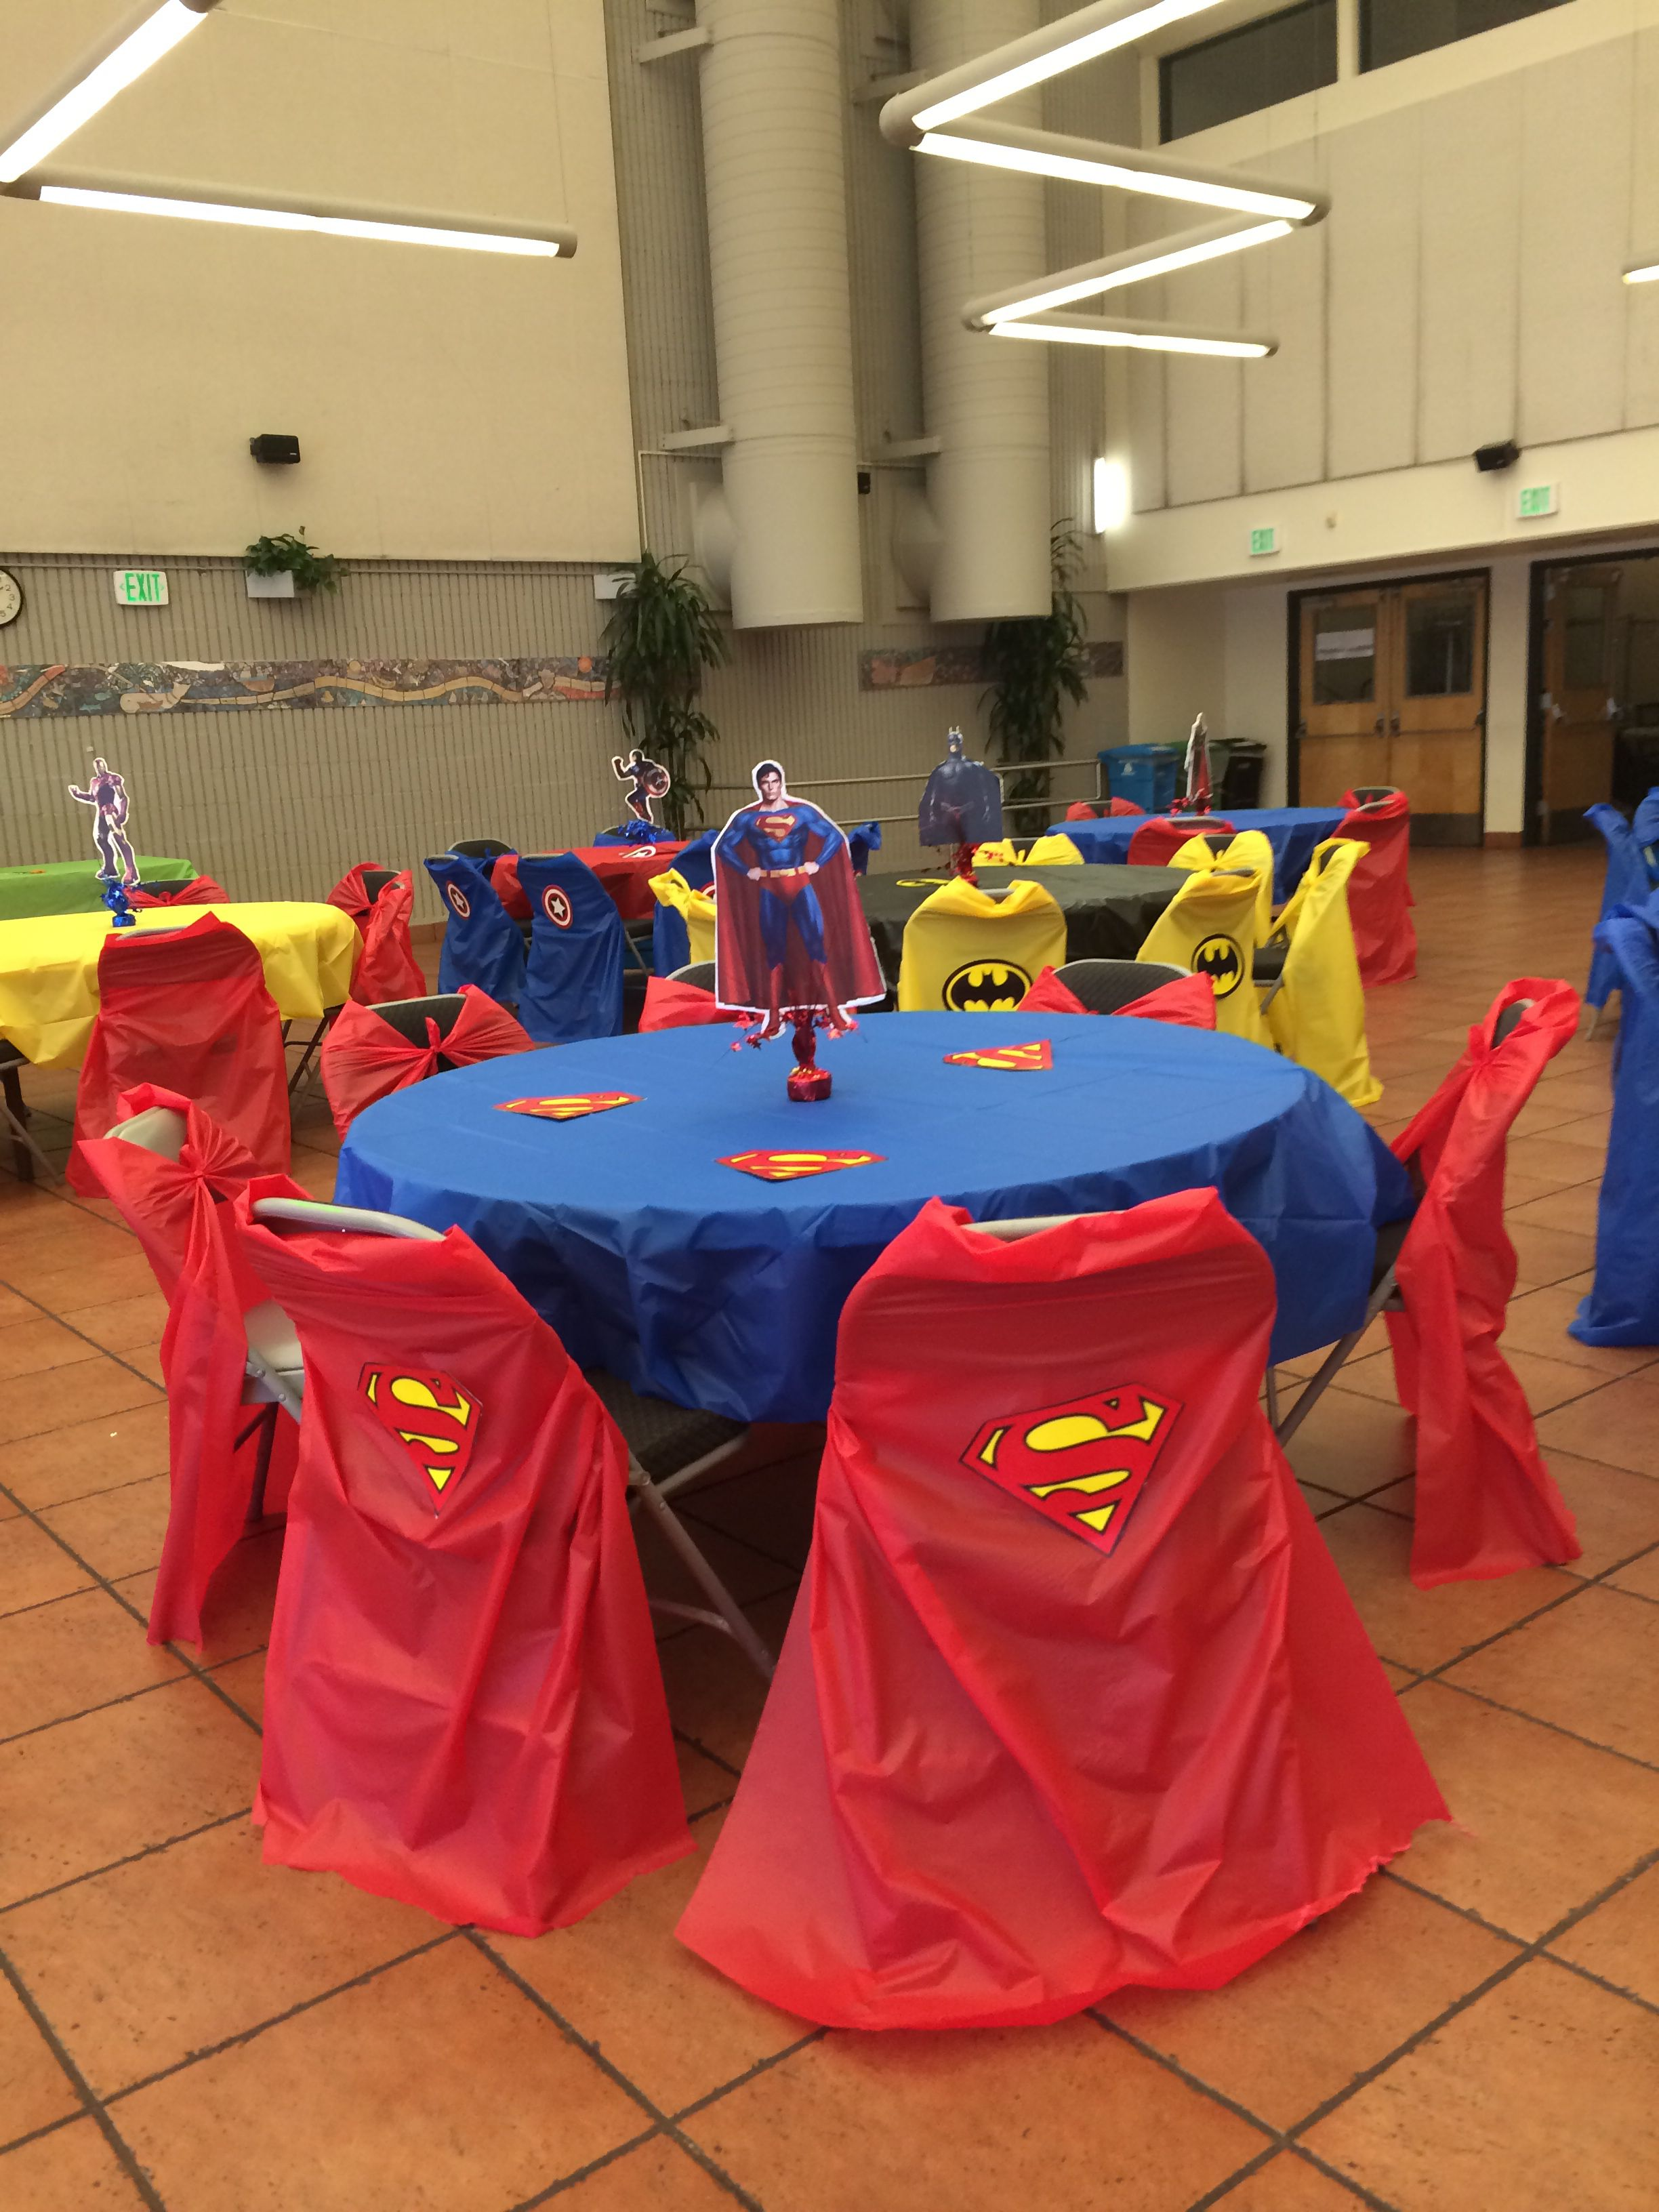 Kiddies Chair Covers For Hire Ergonomic Short Person Super Man Table I Used Plastic And Made Capes The